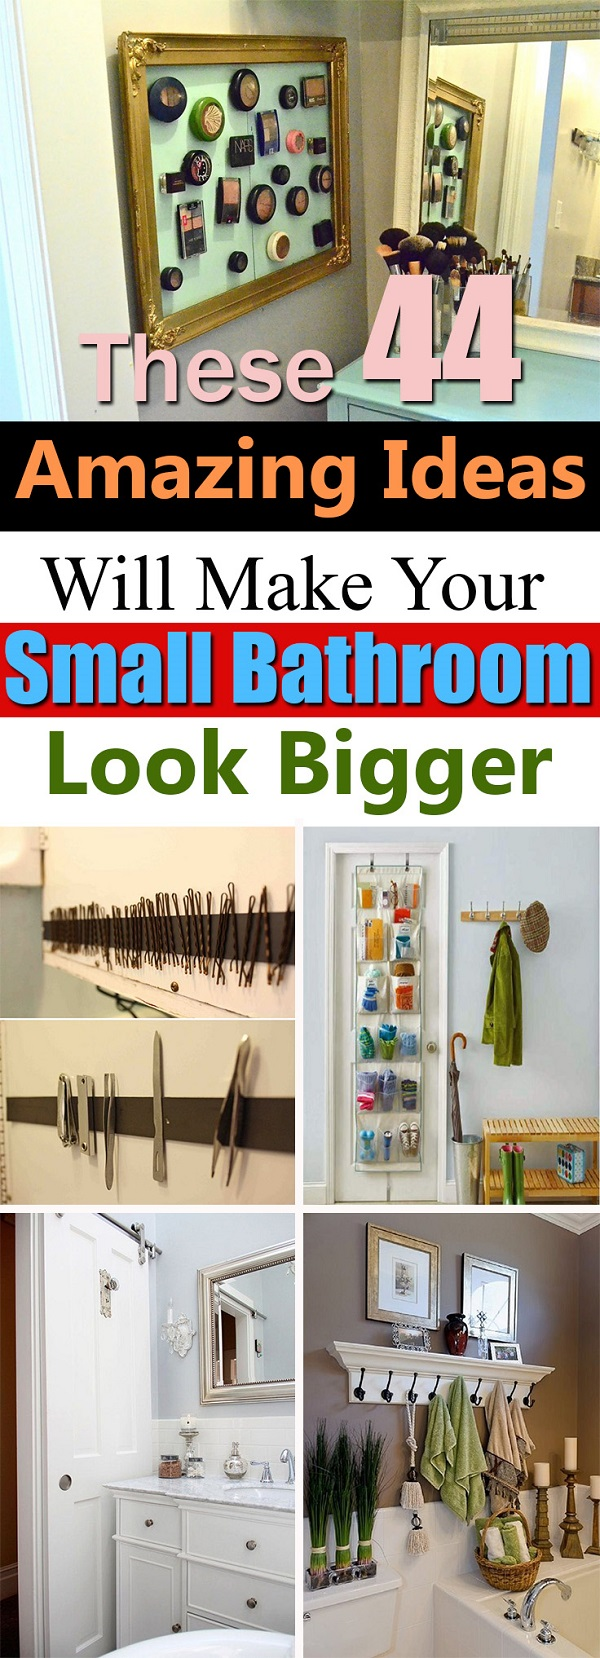 17 insanely clever small bathroom hacks to make it larger for Design ideas to make a small bathroom look bigger